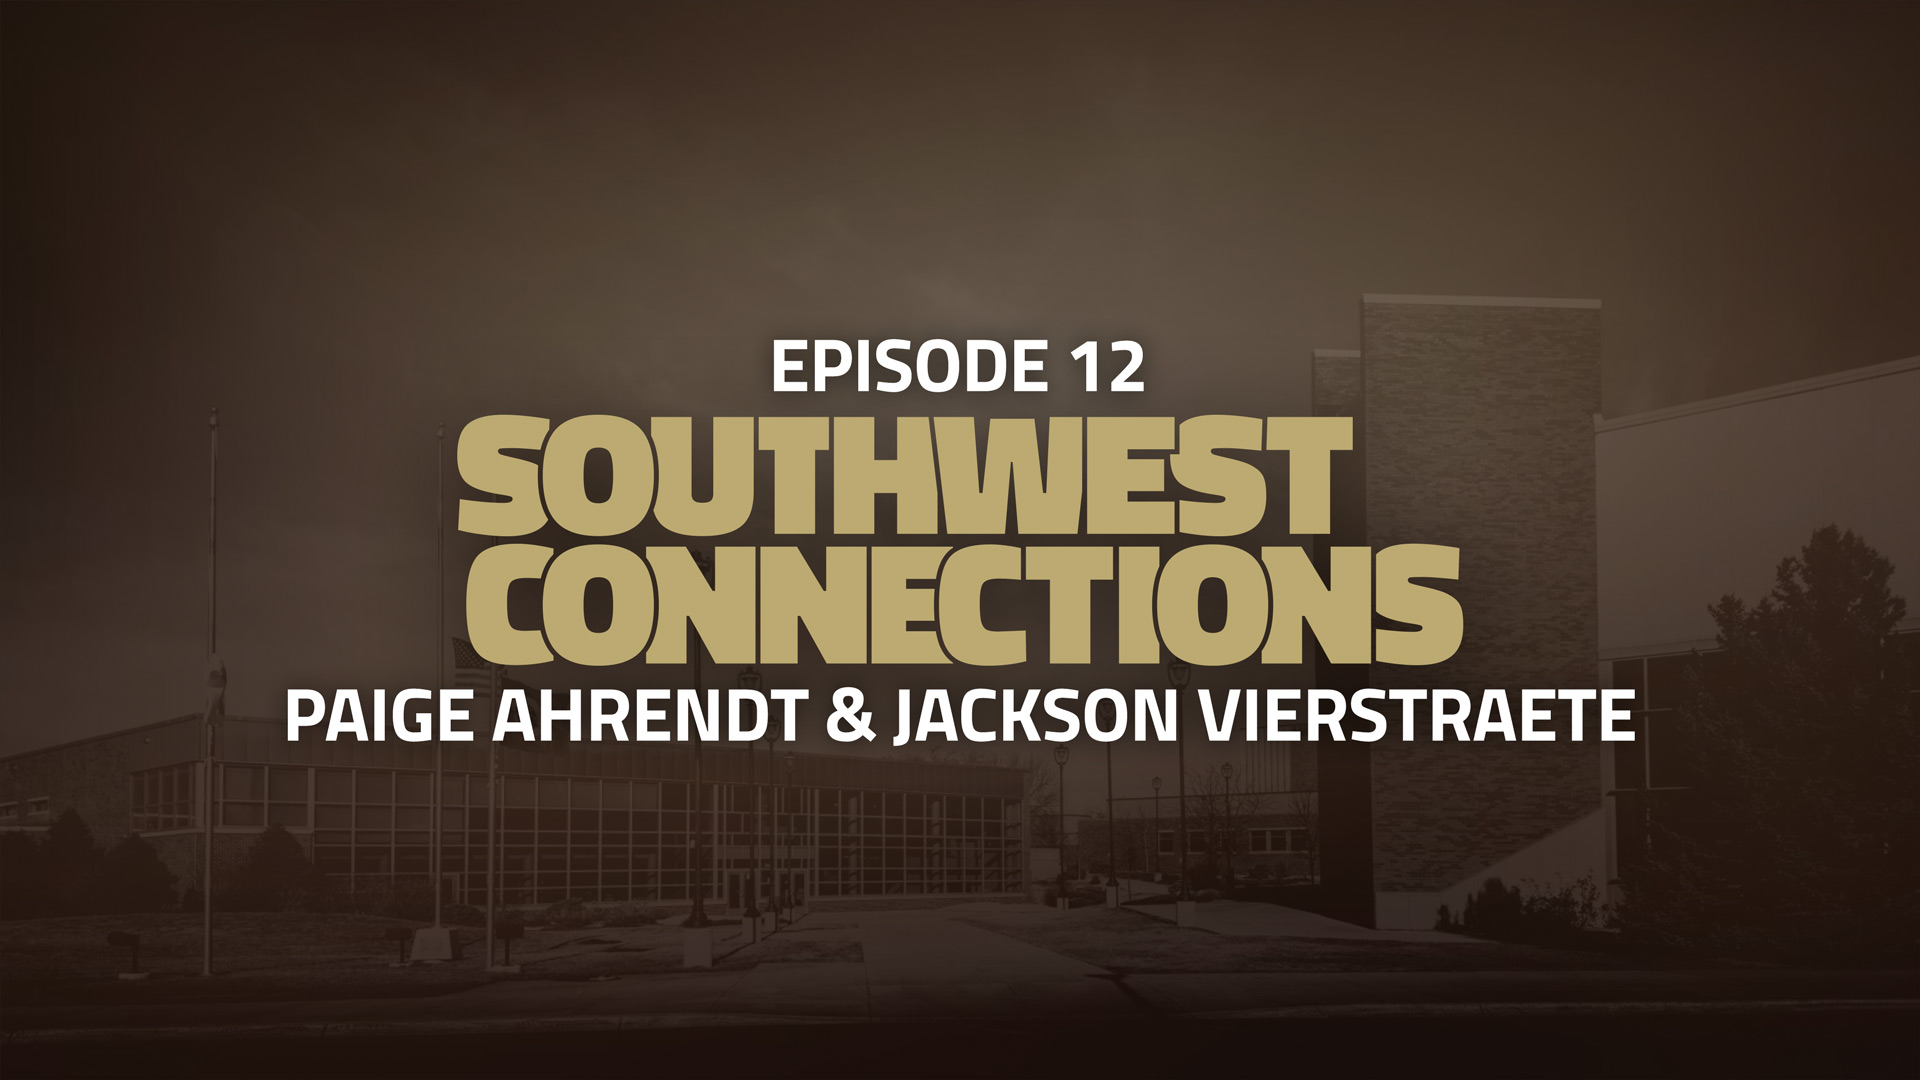 Southwest Connections Episode 12: Paige Ahrendt and Jackson Vierstraete